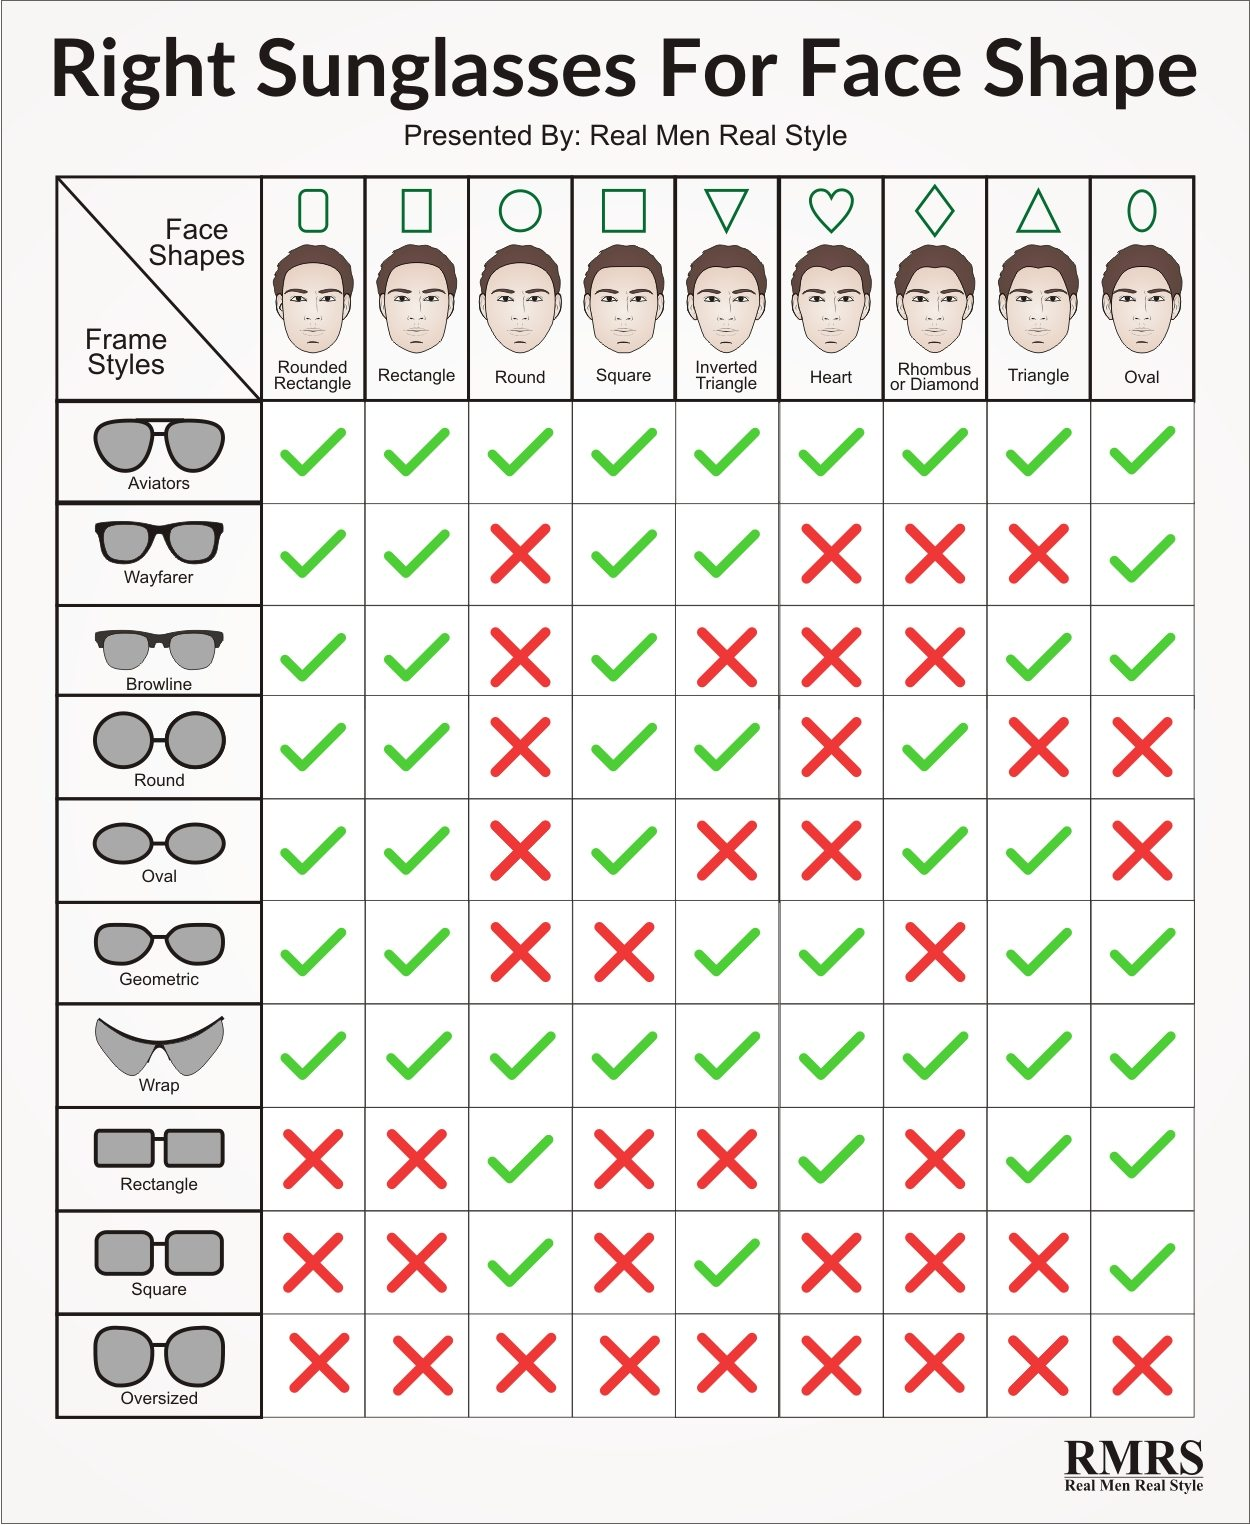 Strange The Right Sunglasses For Your Face Shape Infographic Hairstyles For Women Draintrainus